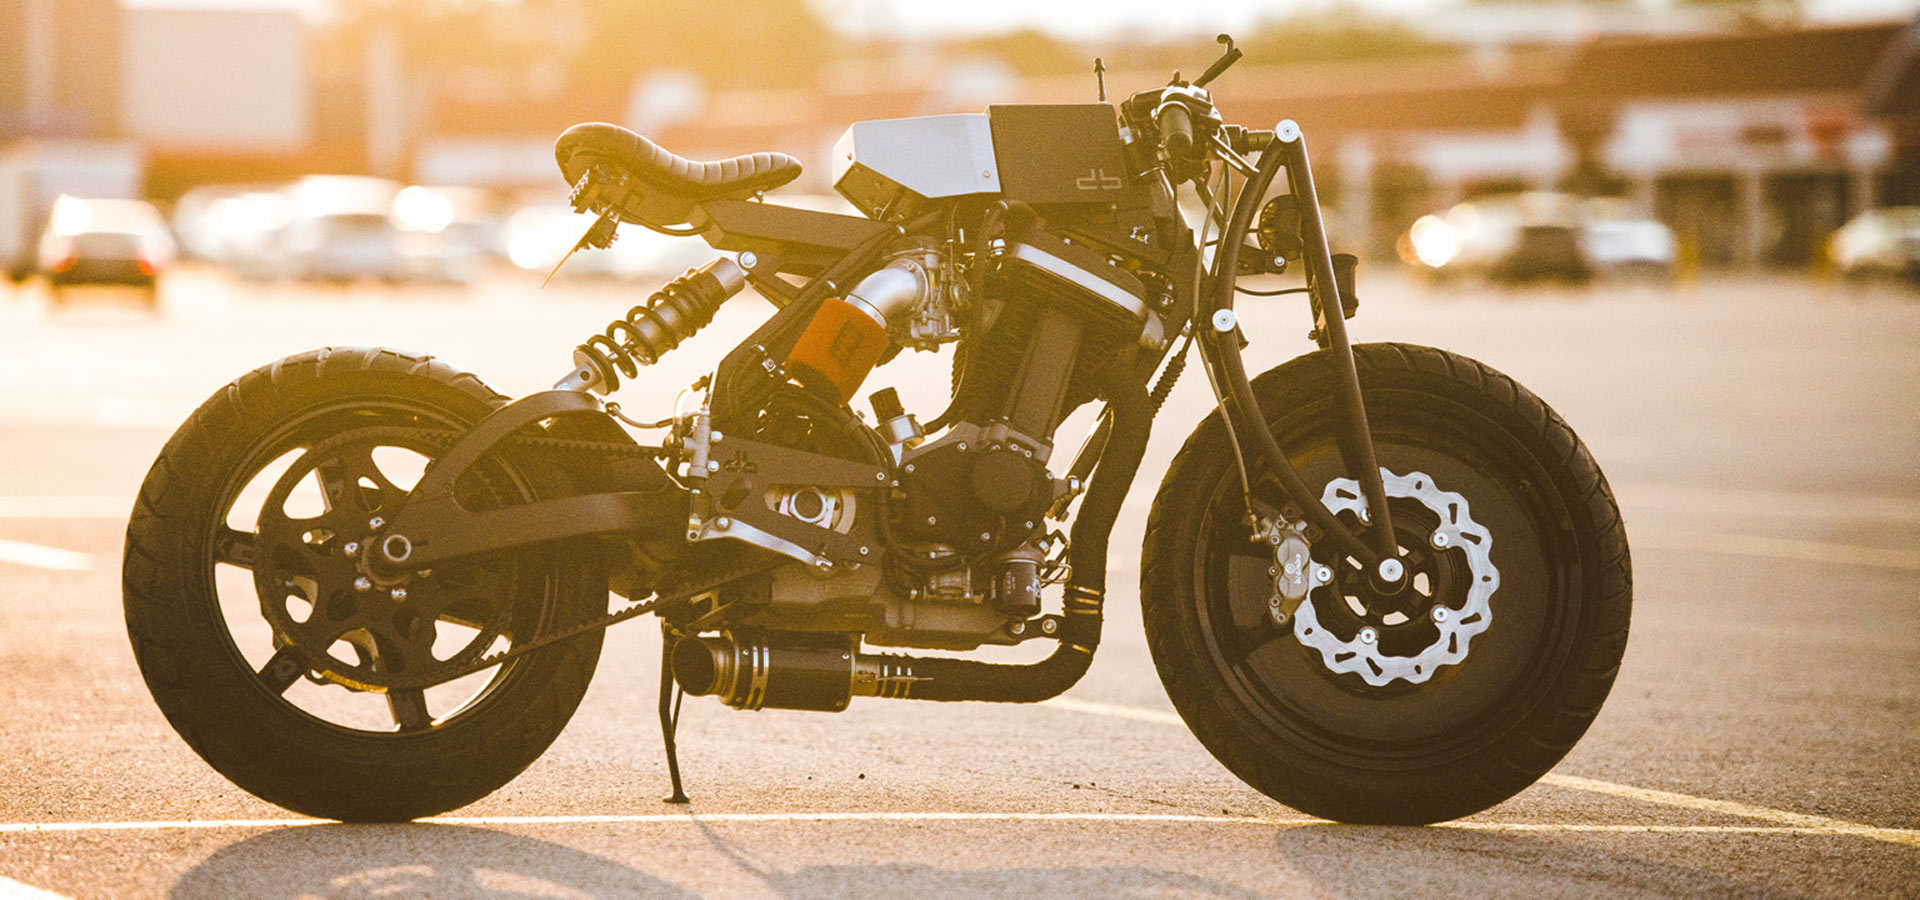 Motorcycle on asphalt with sun in the back